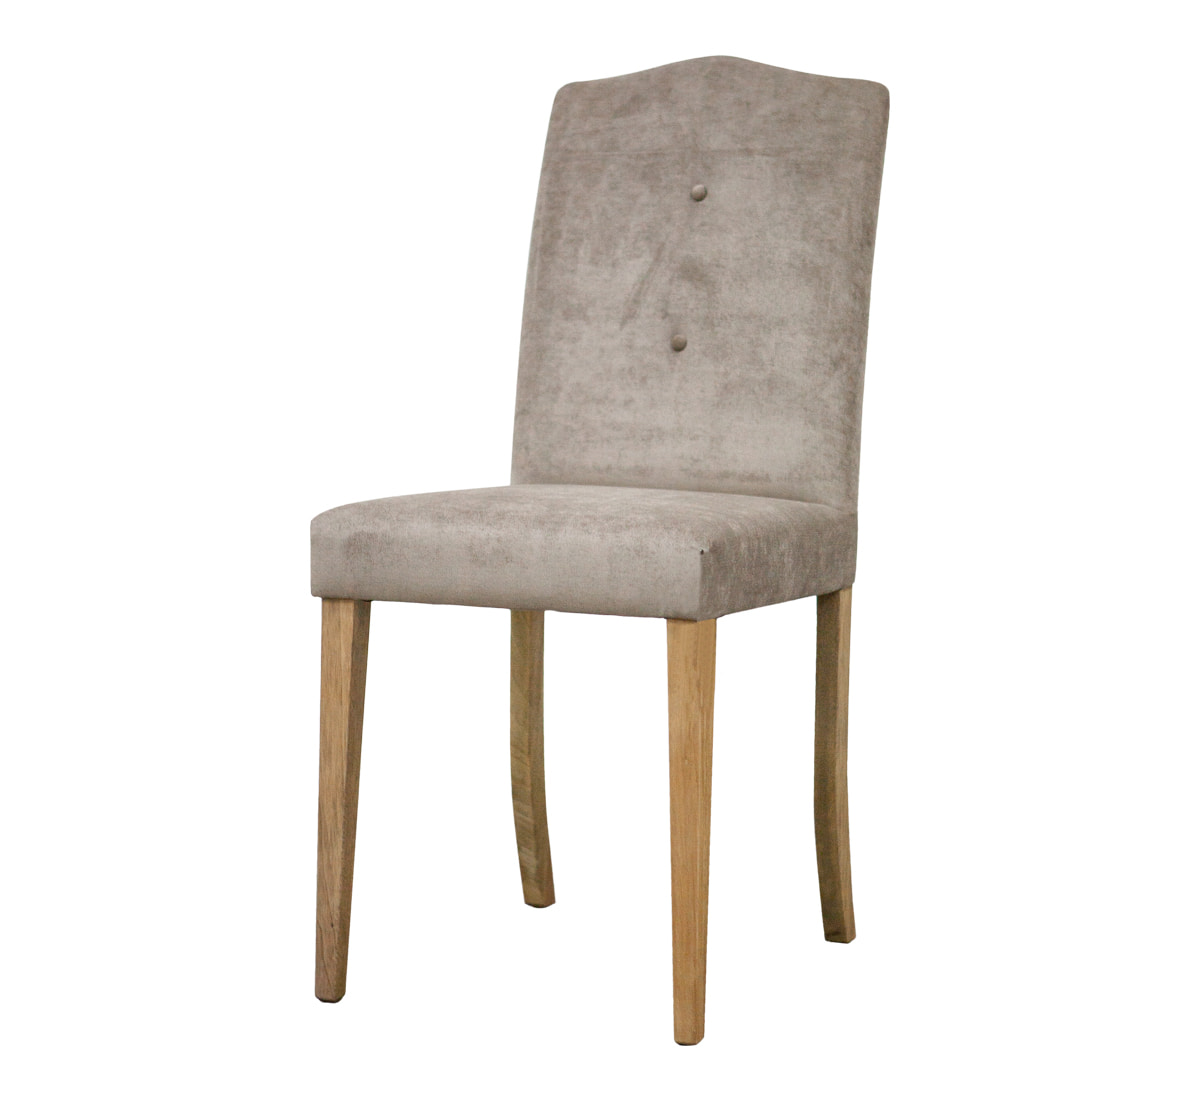 Zacc collection by SEDEC Moroc Grey Brown Dining Chair (Natural) 모록 그레이 브라운 식탁 의자 (내추럴)